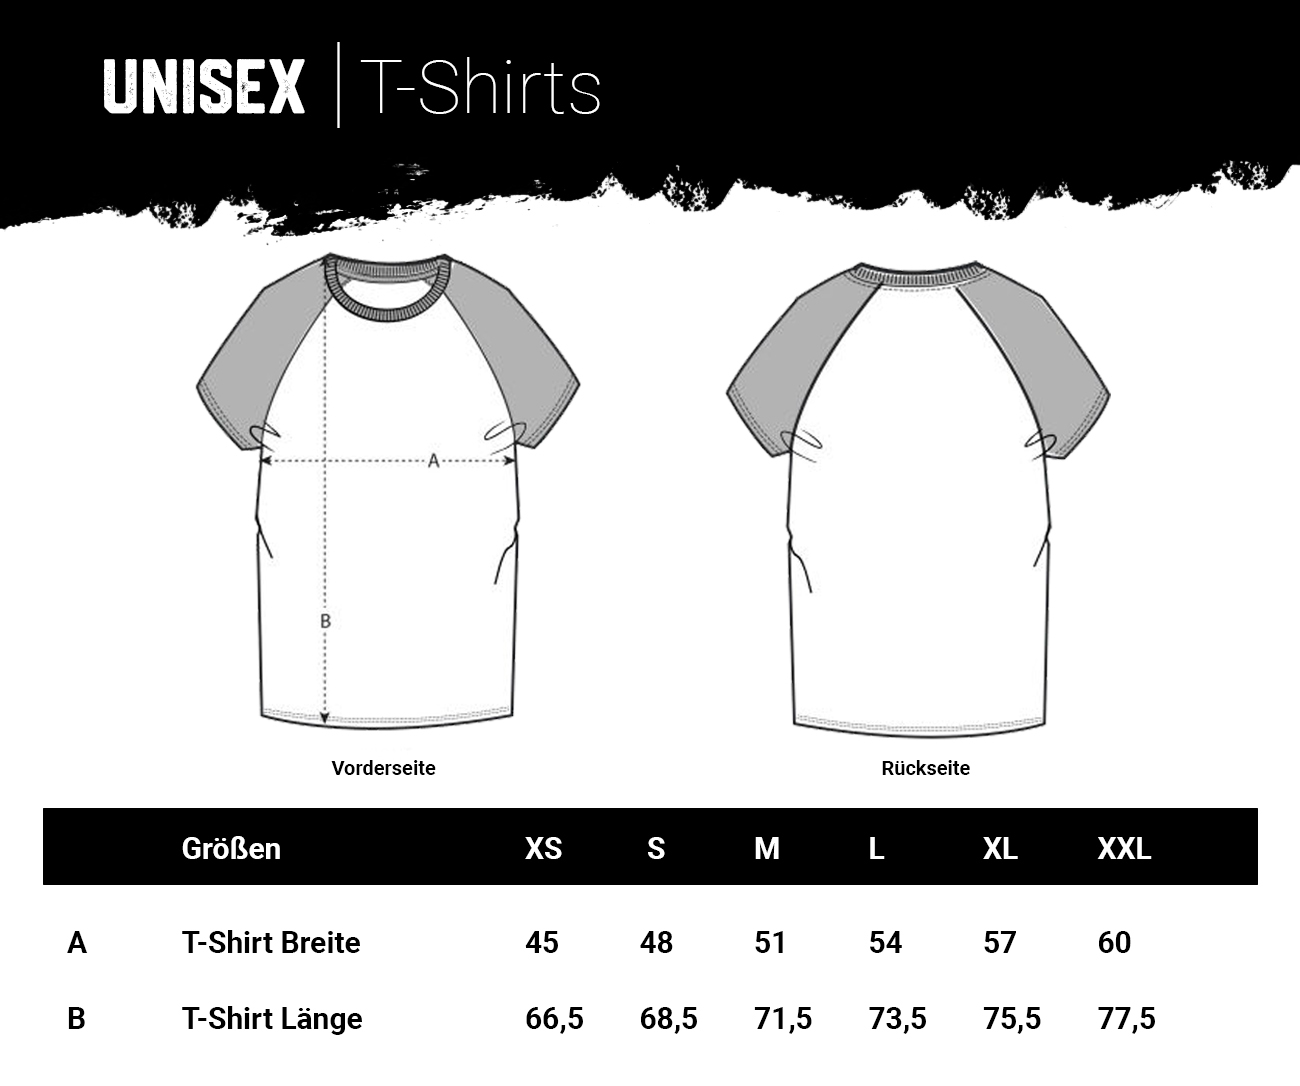 Unisex_T-Shirts_Regular.jpg